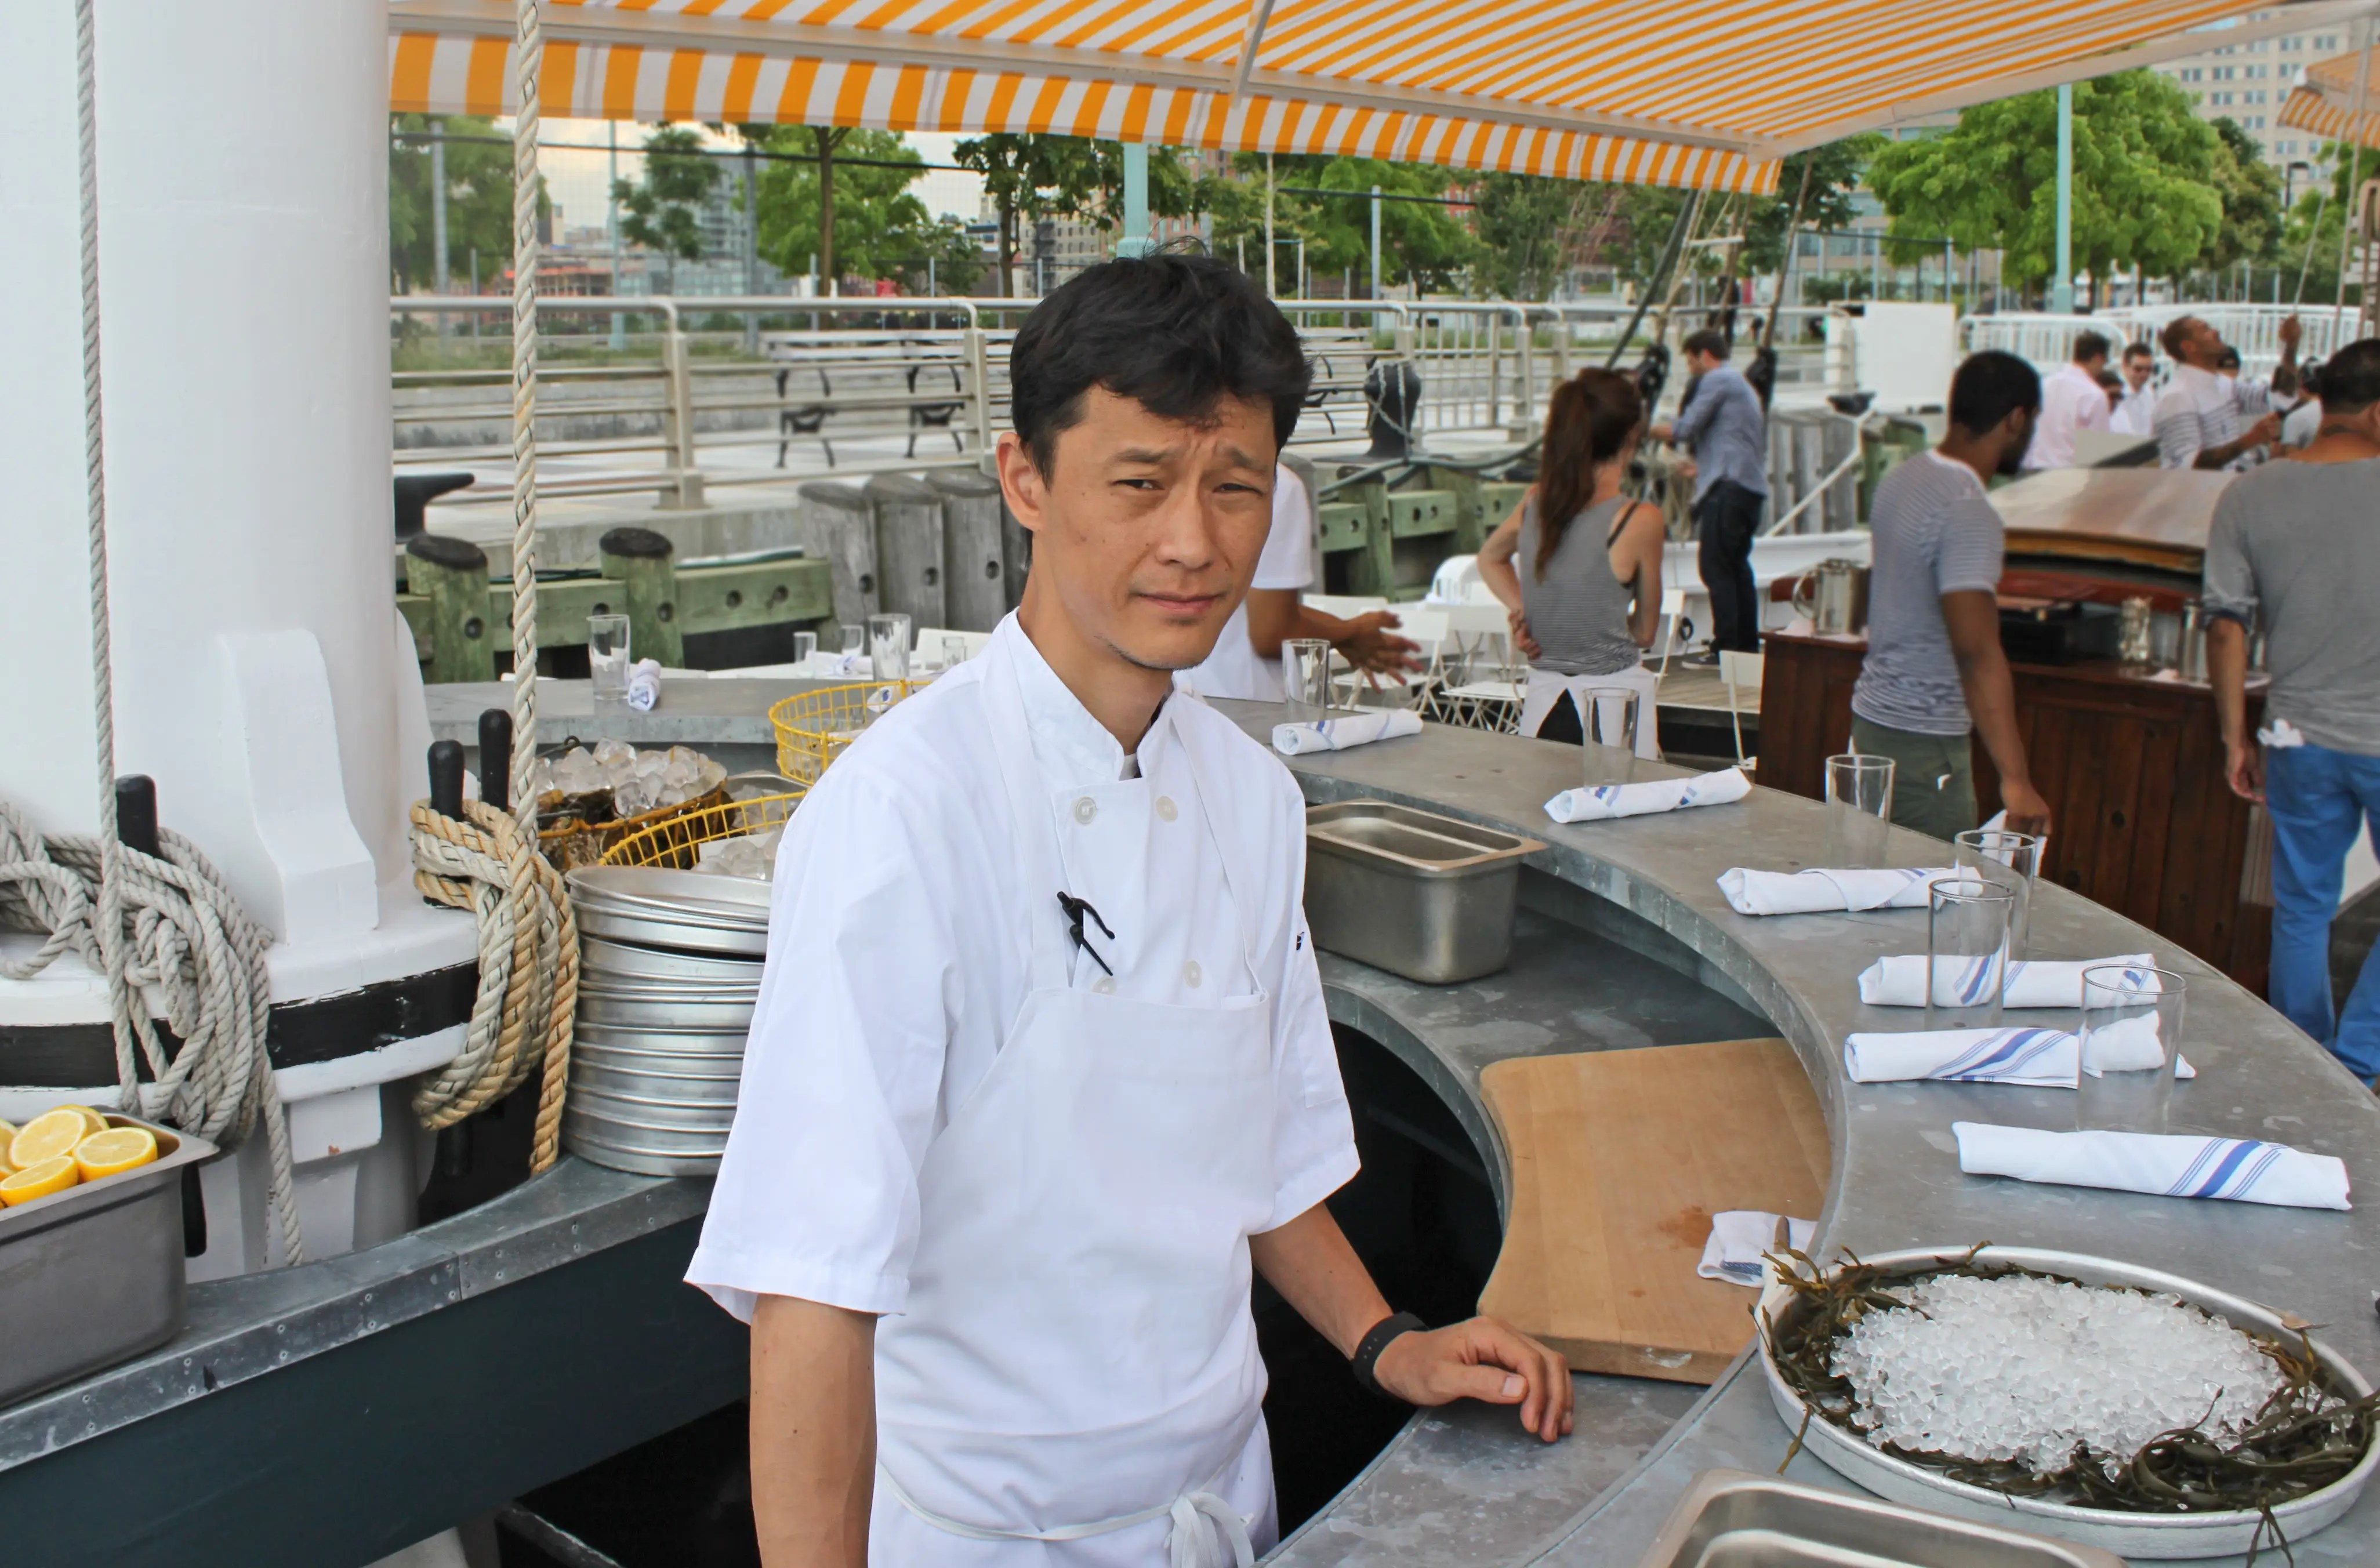 Executive Chef James Kim, who selects and prepares oysters for guests, is a master of his craft. In addition to oysters, there's a selection of small plates like fried squash blossoms and smoked crudo.